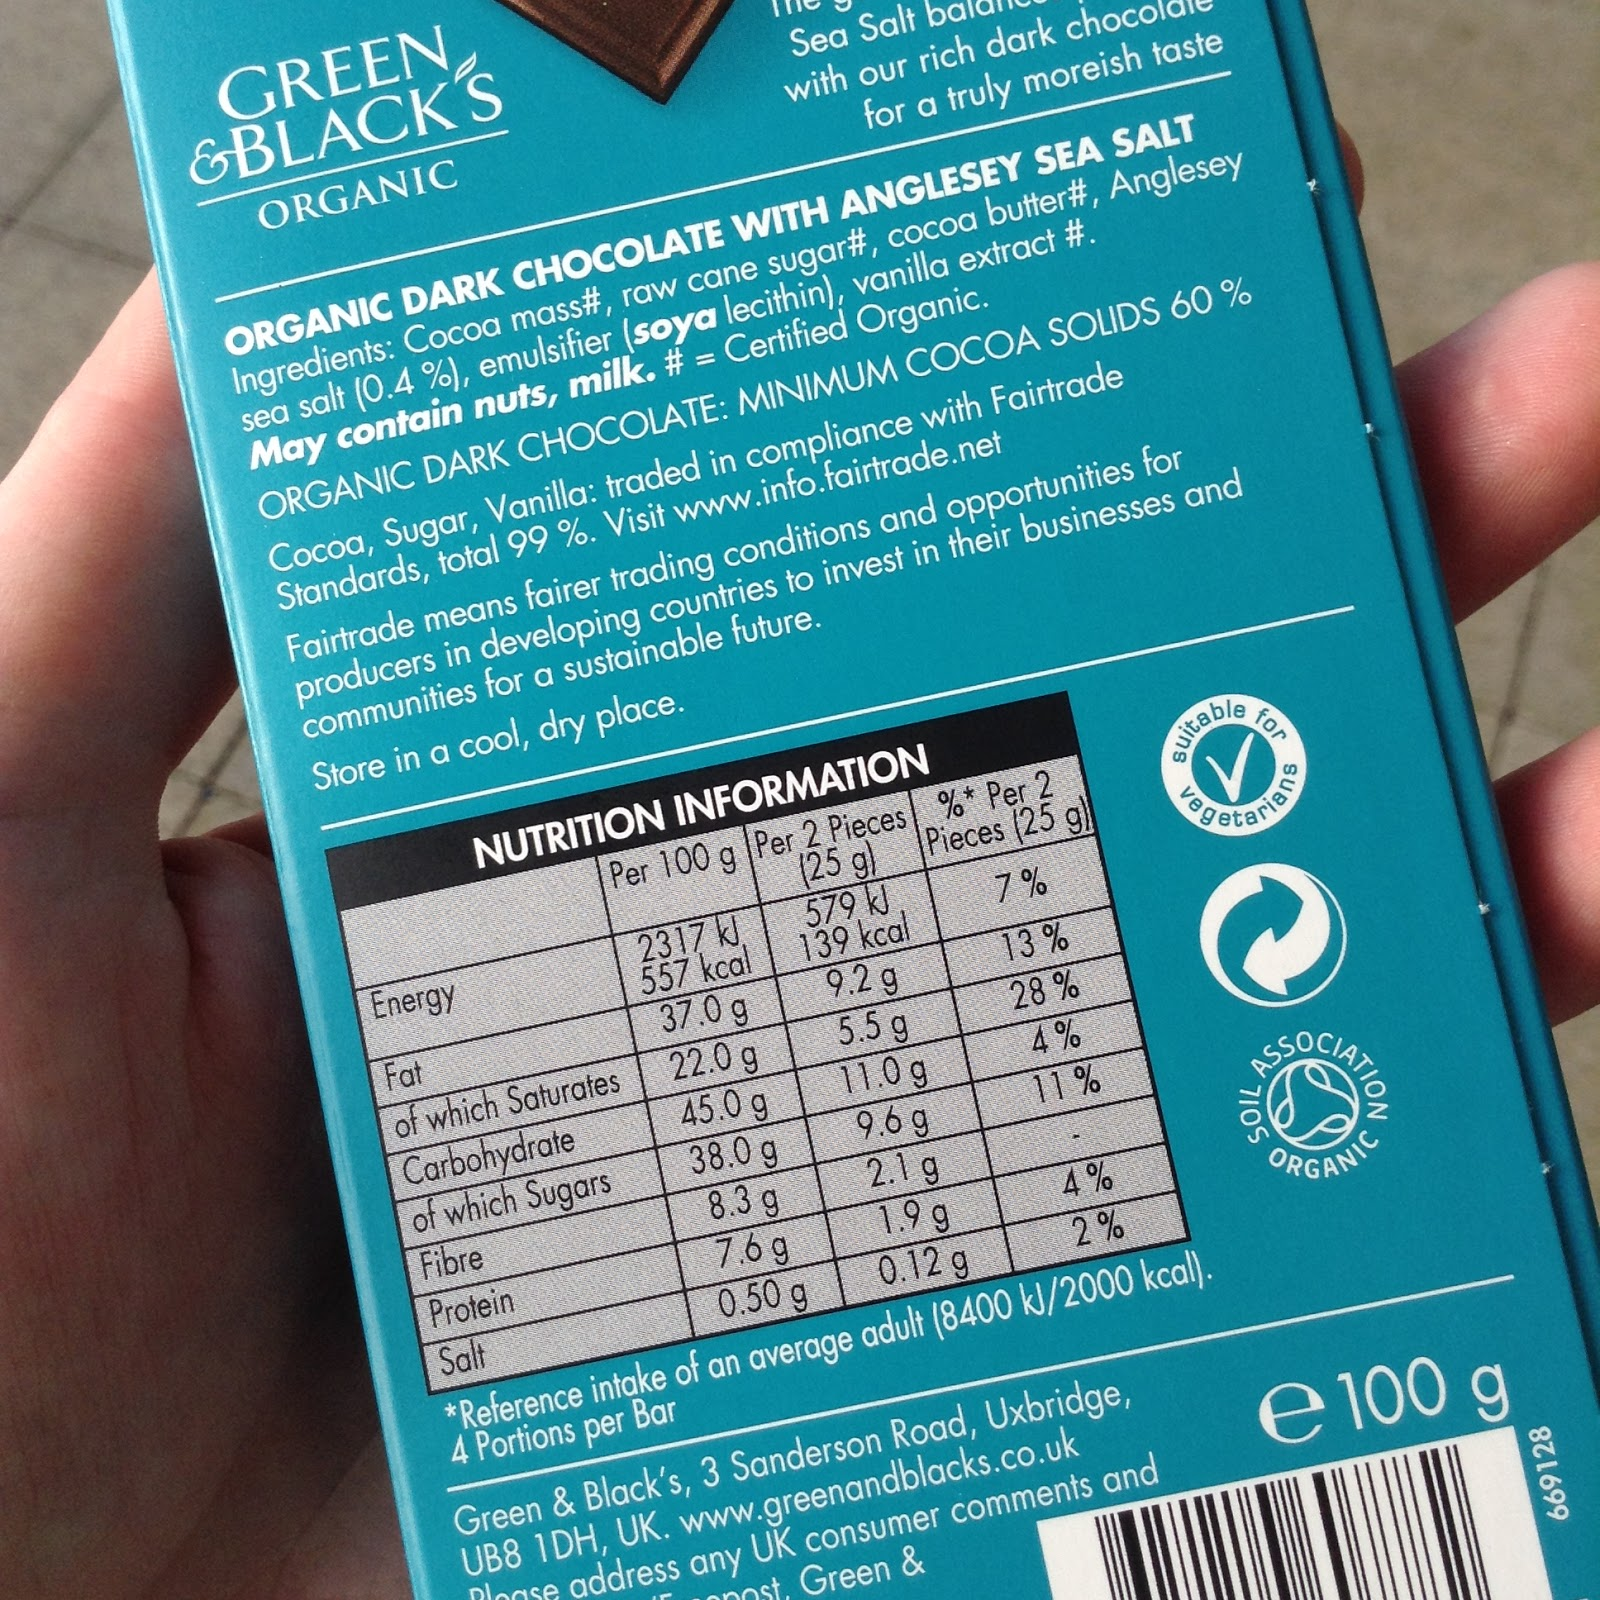 Is Green And Blacks Organic Dark Chocolate Suitable For Vegans